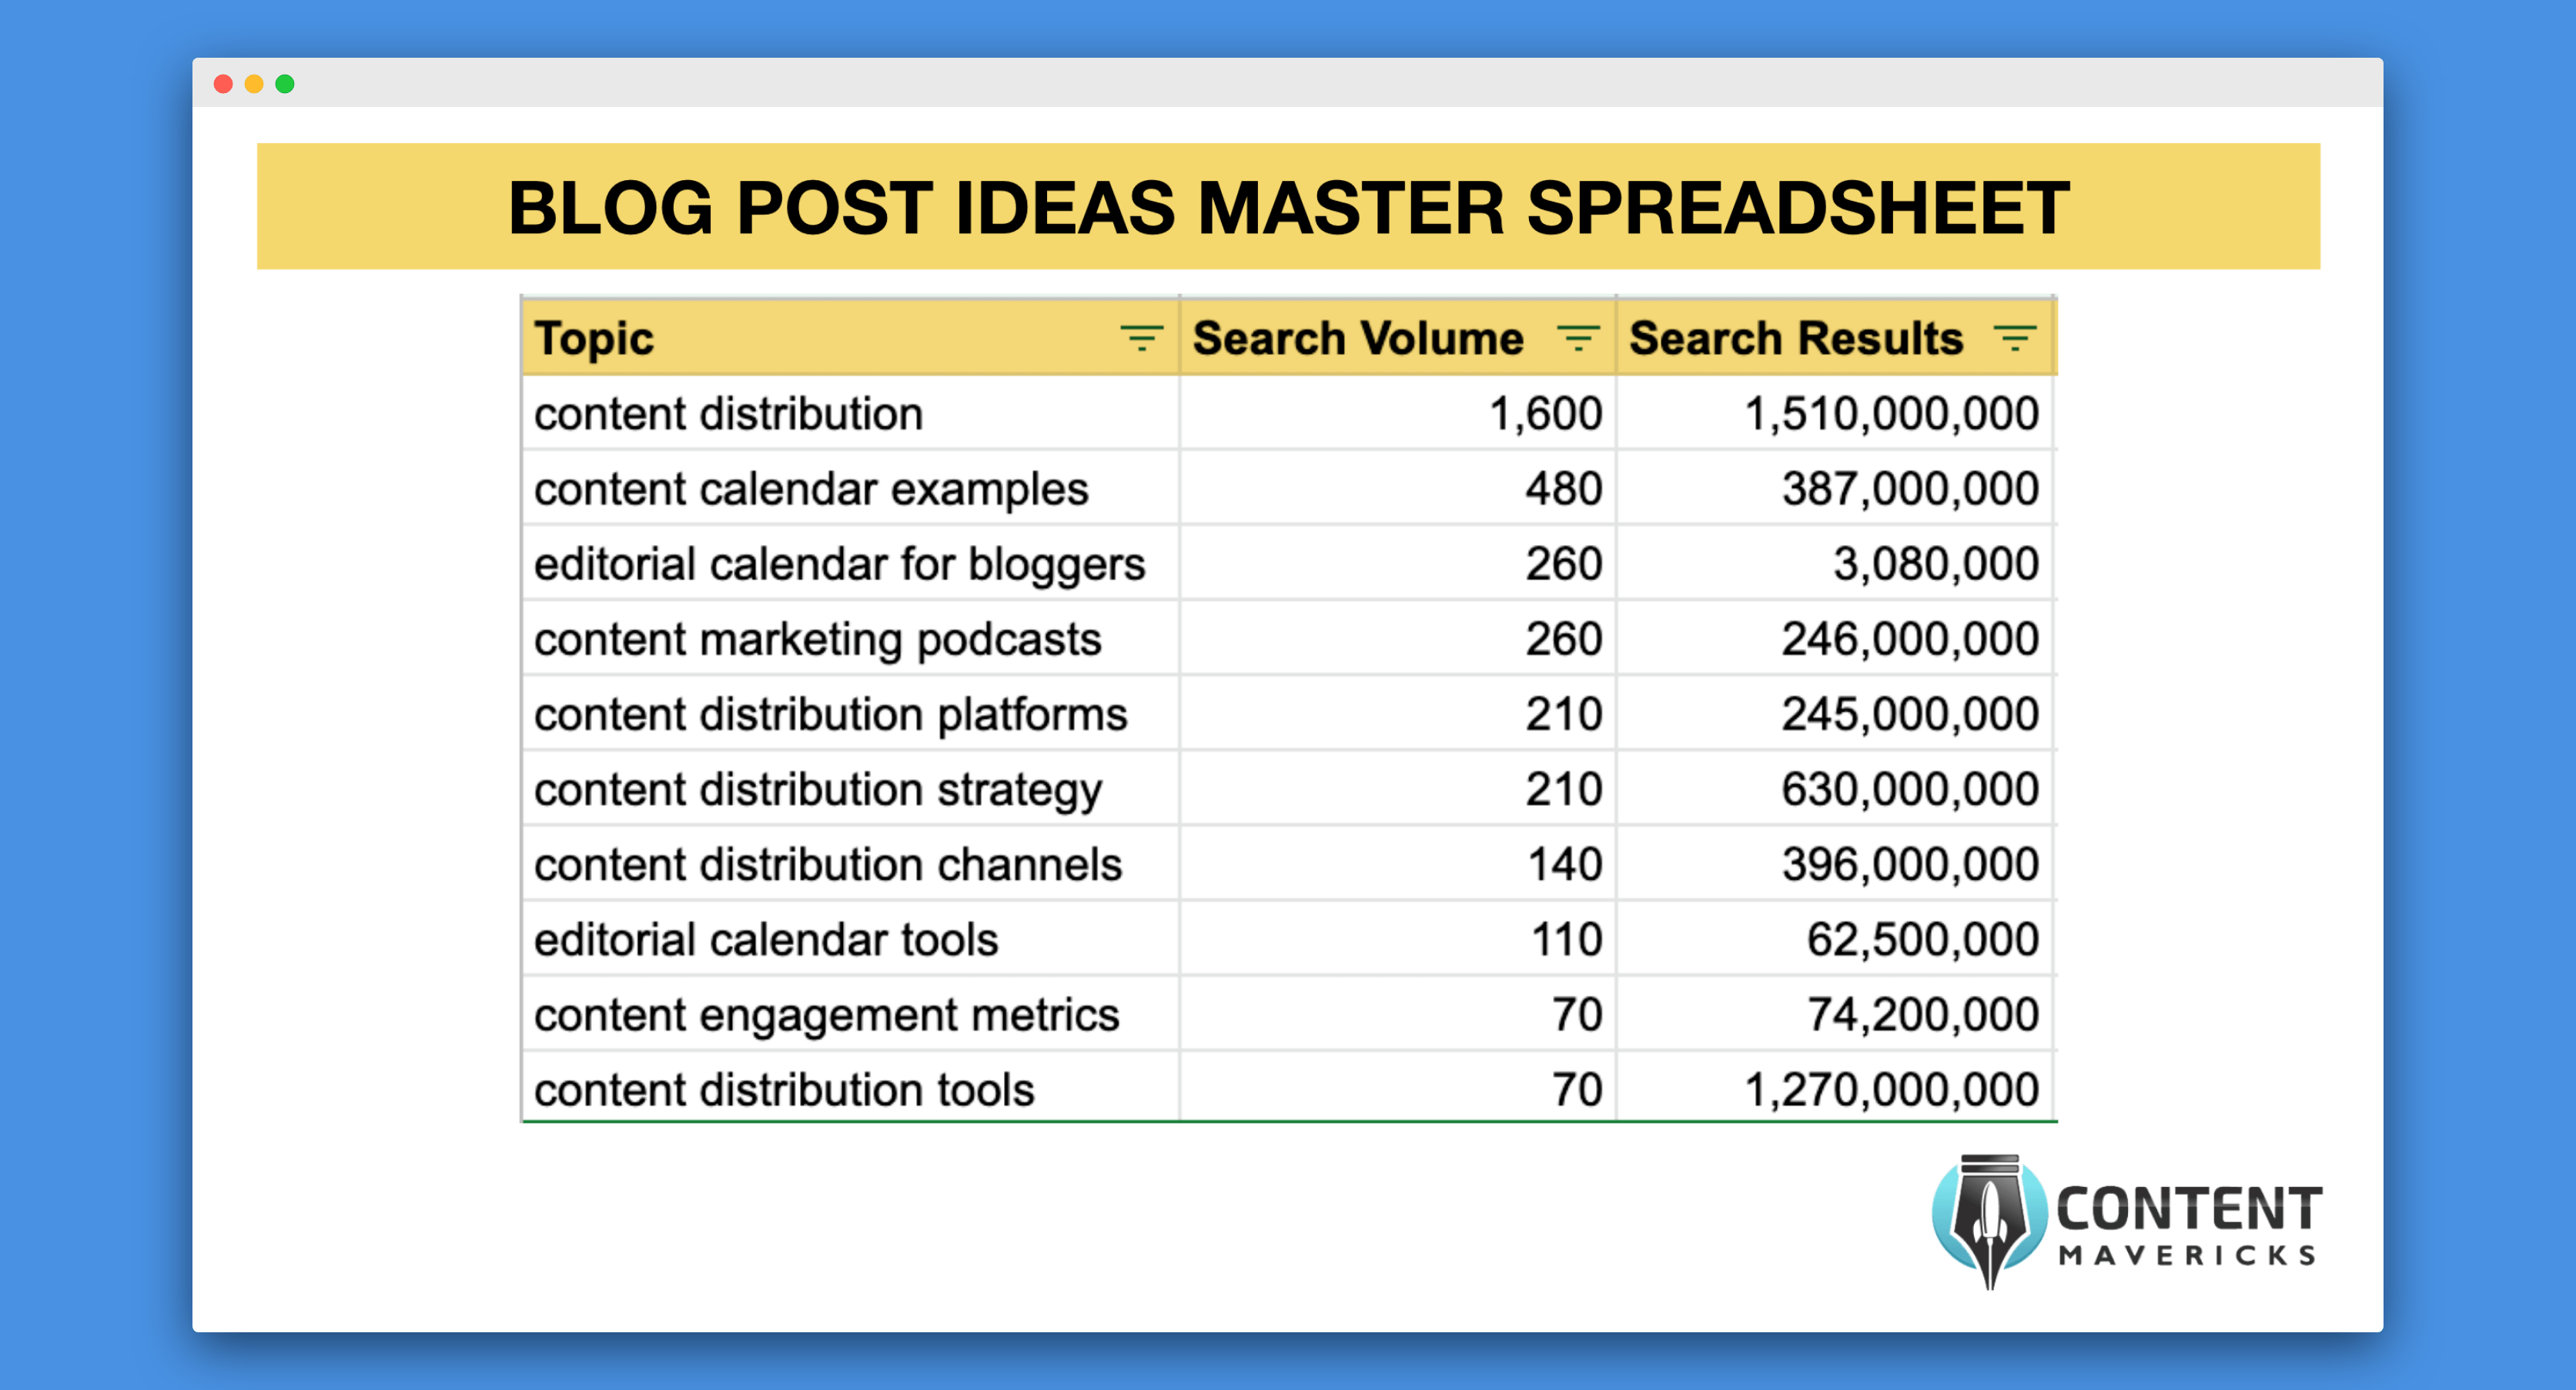 blog post ideas master spreadsheet image